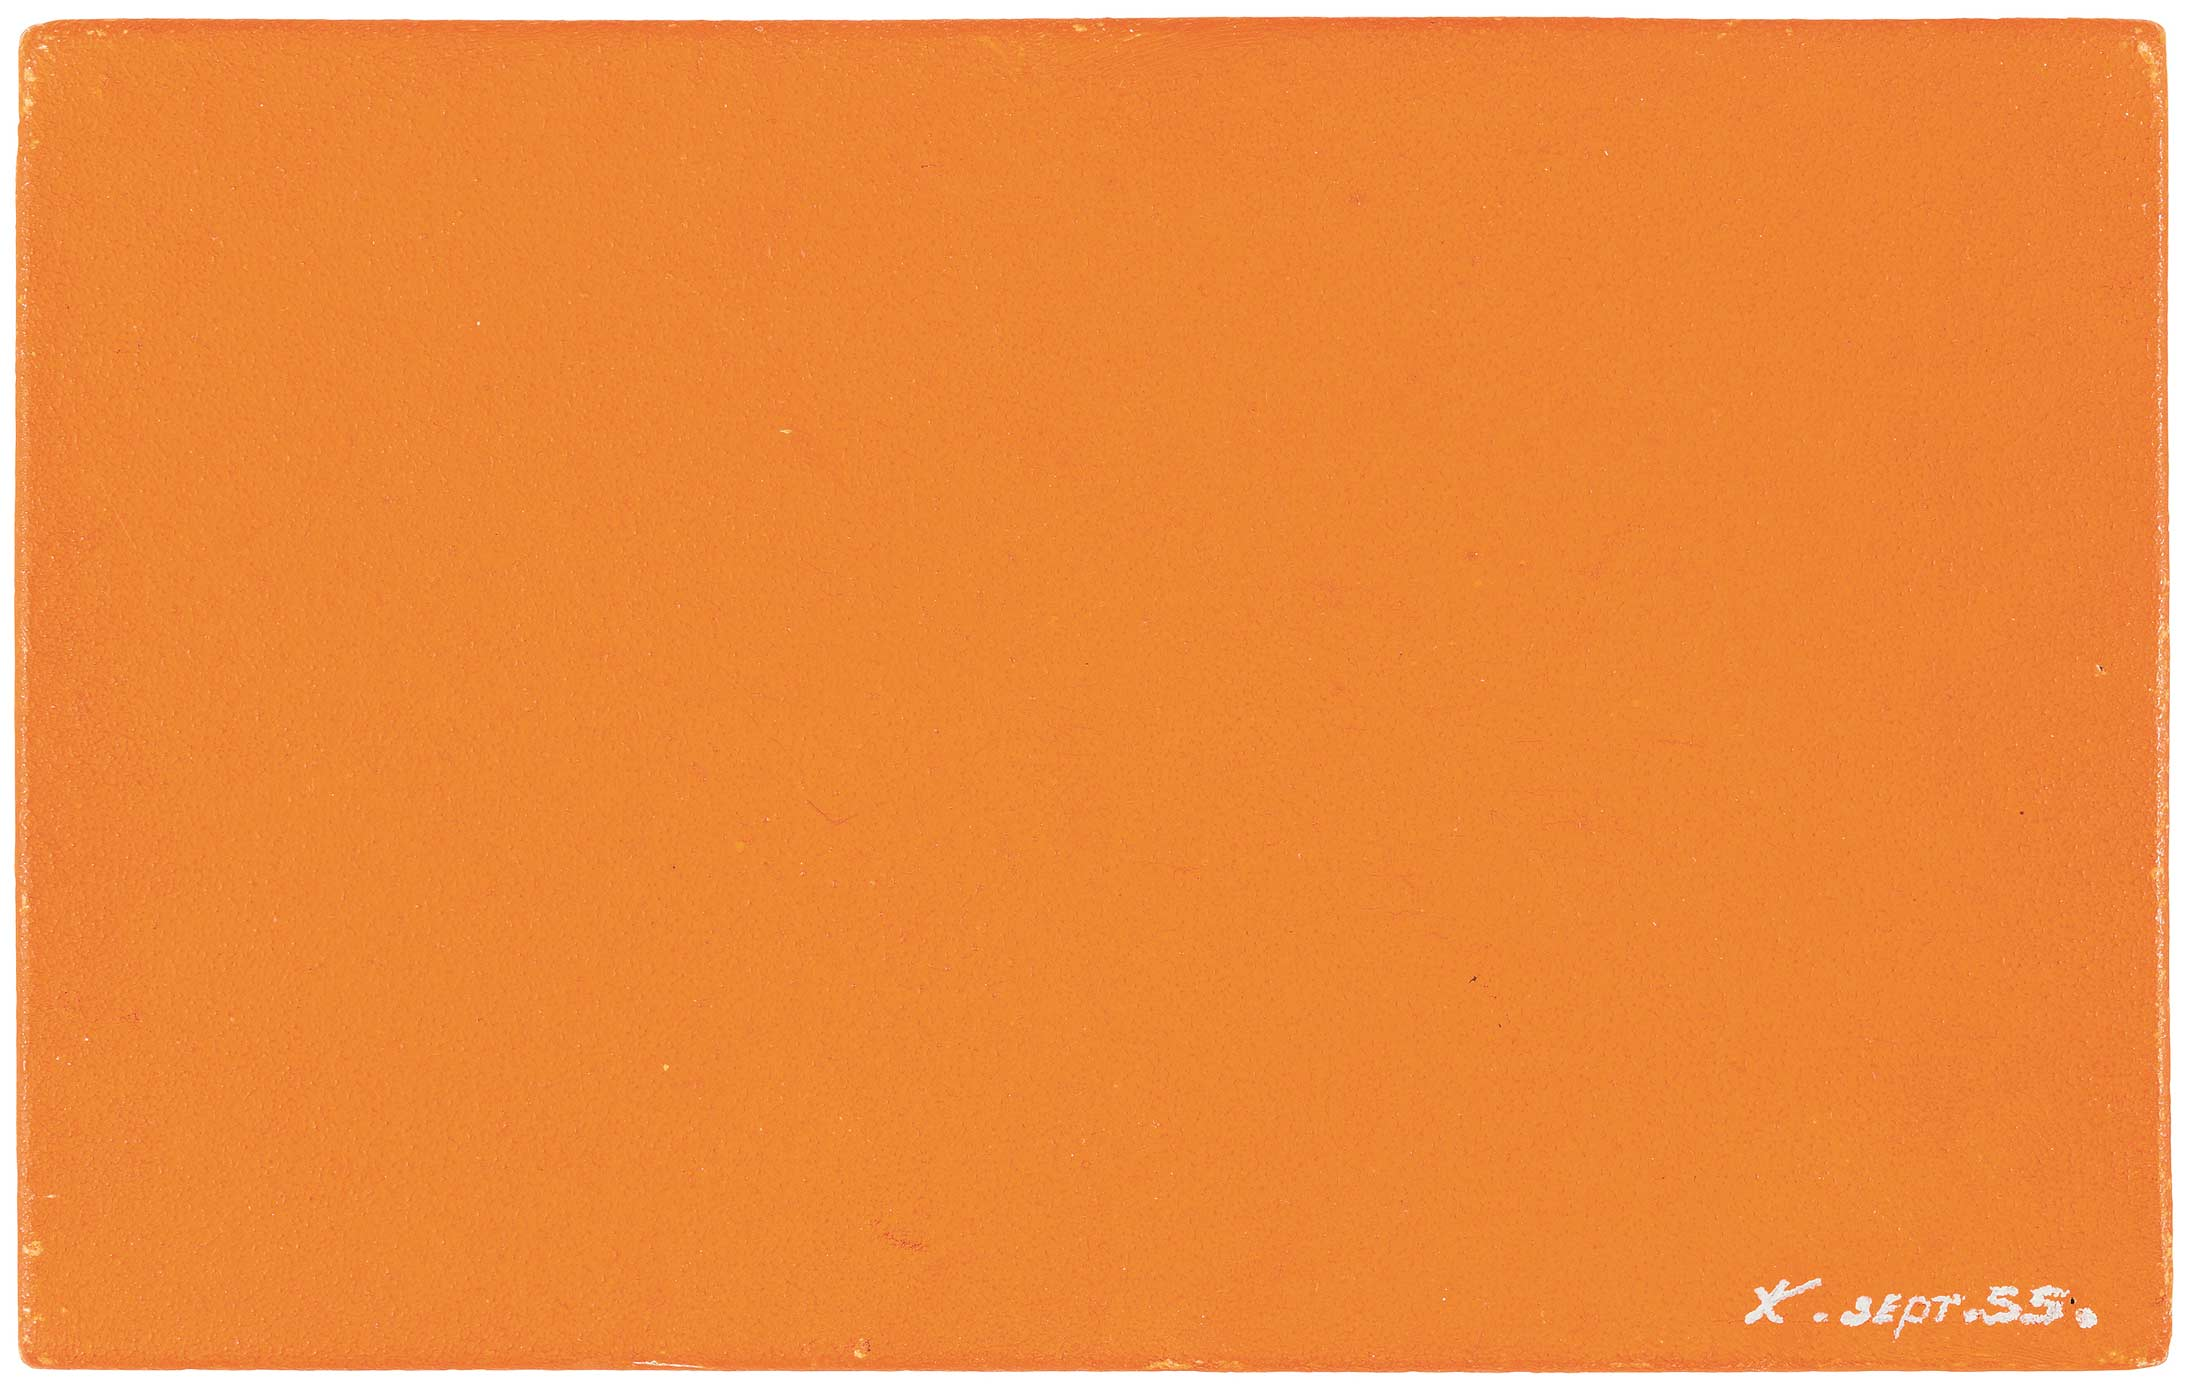 chapter2-klein_monochrome-orange-sans-titre-m-111_1955_ahlers-collection-002